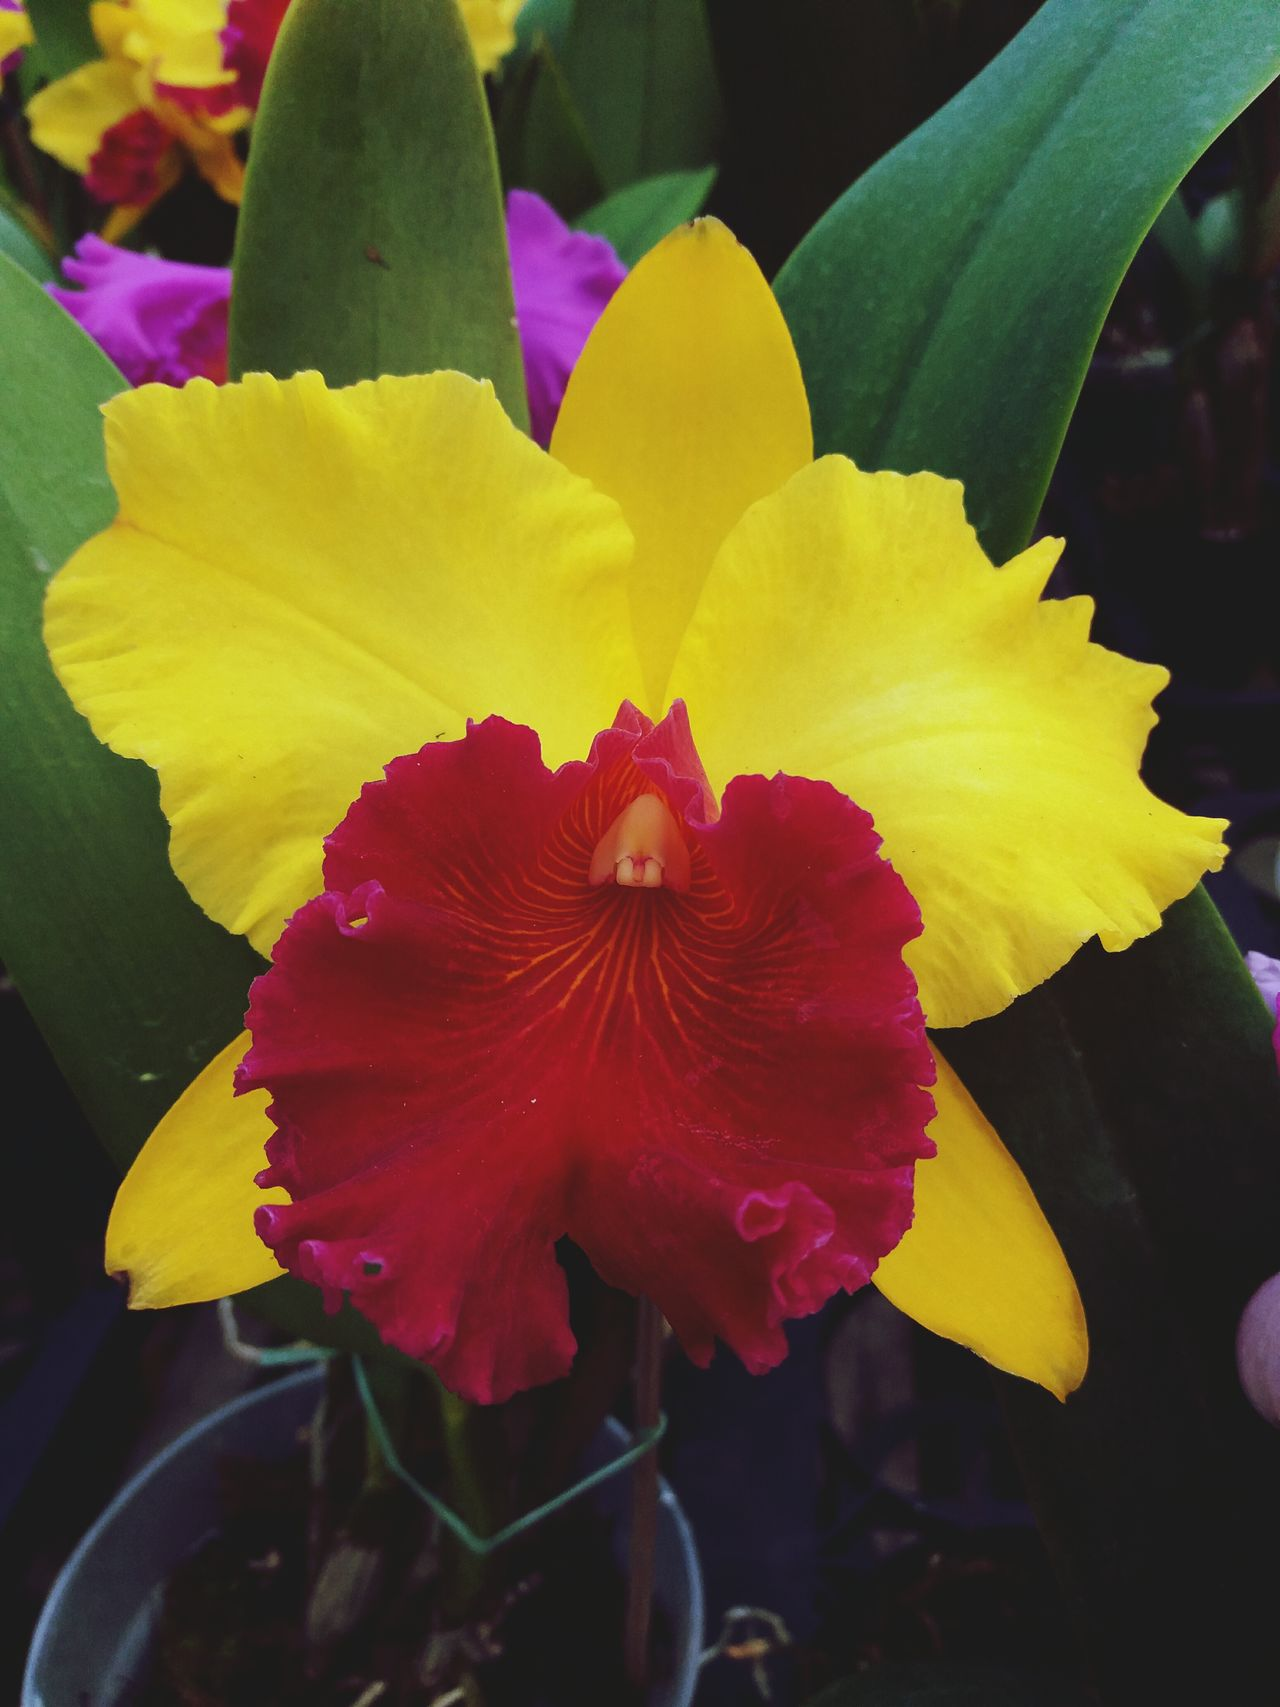 Greenhouse Multi Colored Orchidea Iris - Plant Springtime Flower Flower Head Fragility Vibrant Color Plant Blossom No People Orchids In Bloom Orchid Flower Flowerbed Orchids Orchids Collection Orchidslover Petal Focus On Foreground Yellow